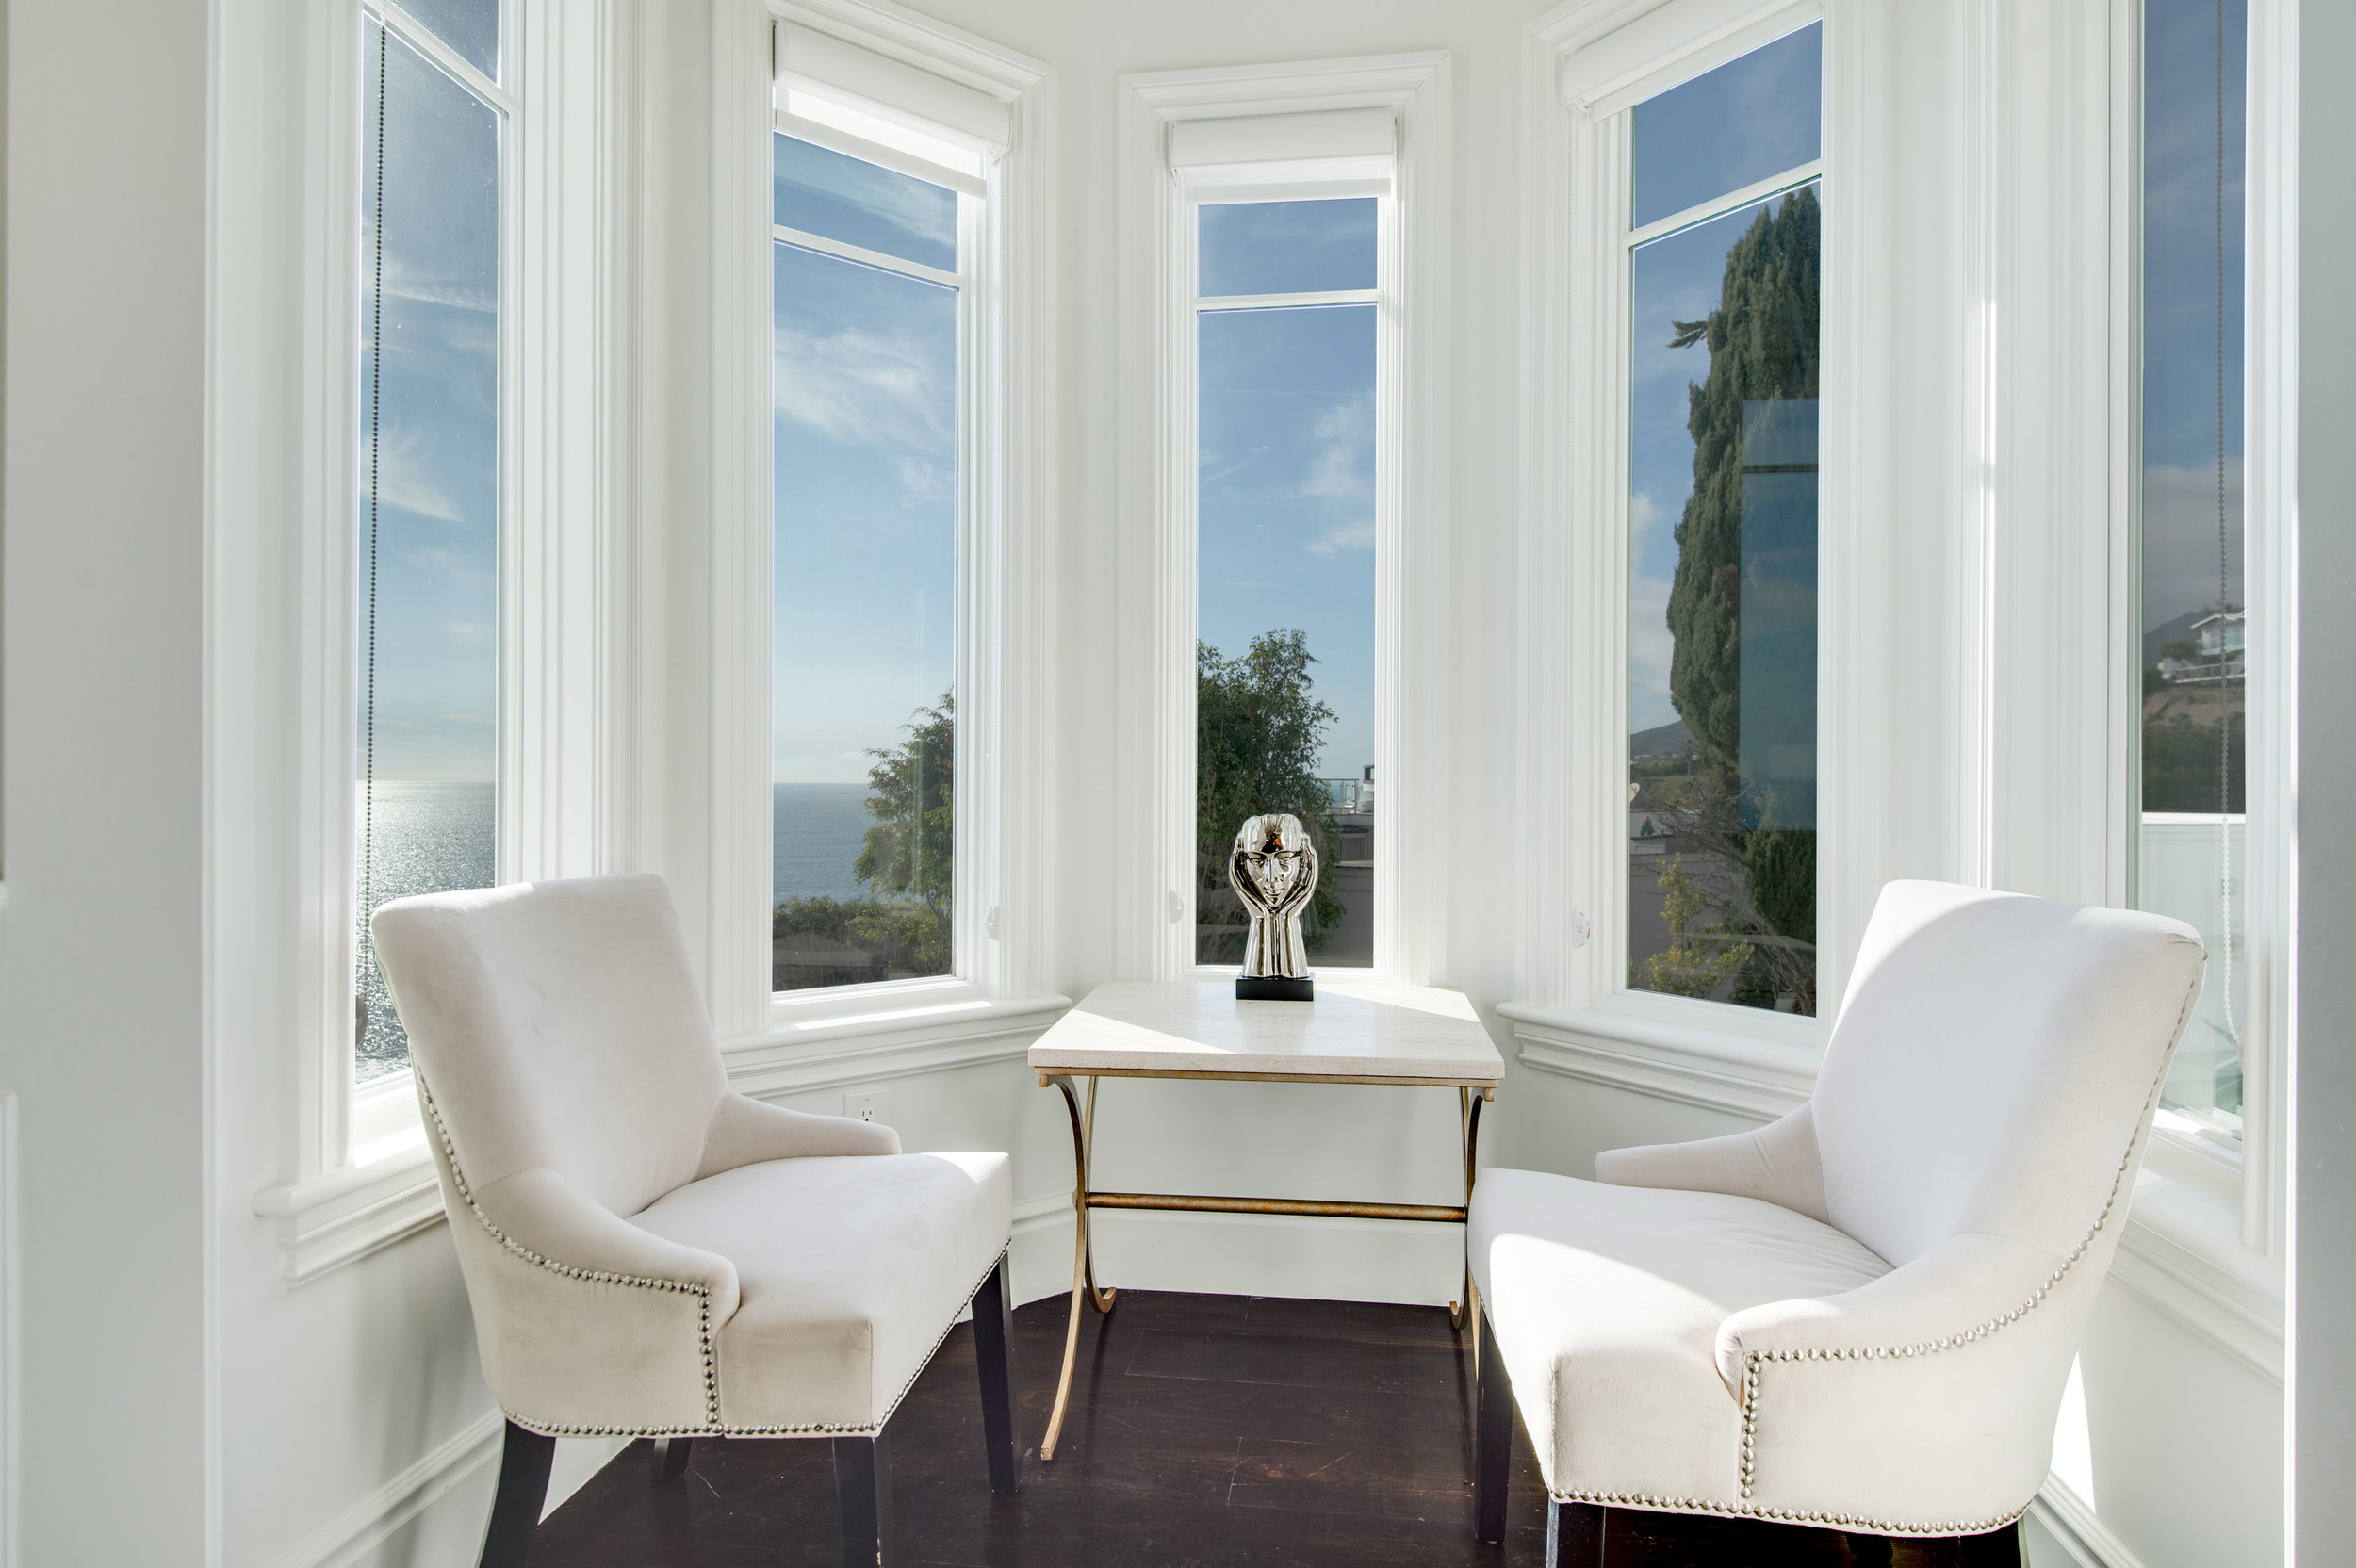 003 Nook Ocean View 17819 Castellammare Drive Pacific Palisades For Sale Lease The Malibu Life Team Compass Luxury Real Estate.jpg